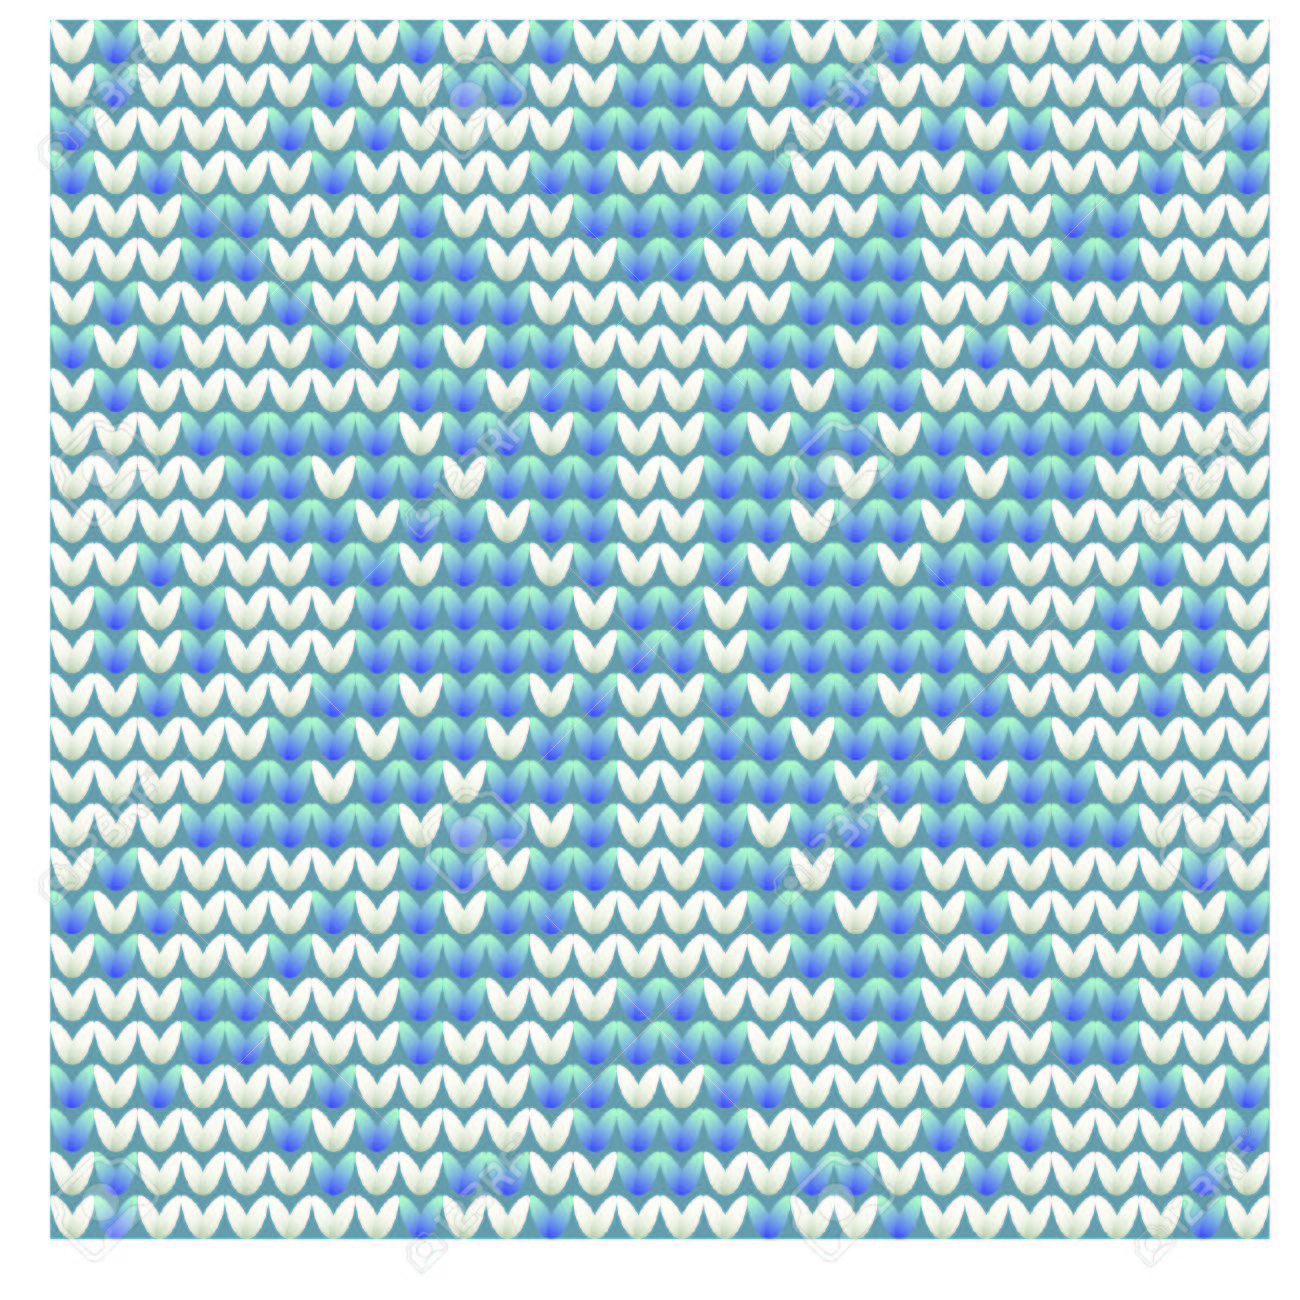 Knitted Snowflake Winter Pattern Vector Illustration Royalty Free